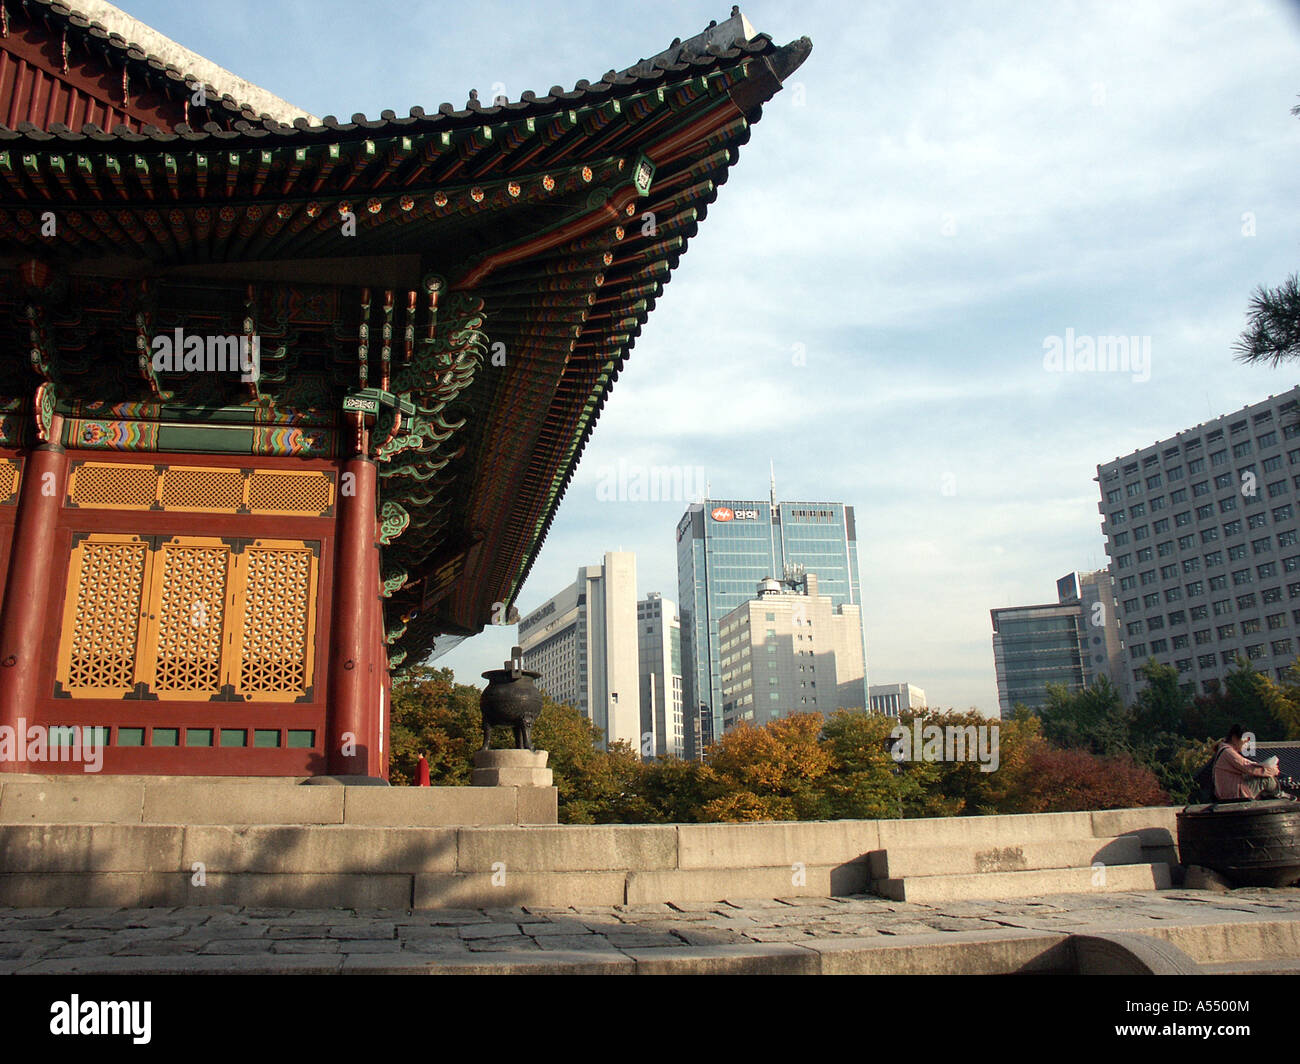 Painet ip2236 korea royal palace seoul 2003 country developing nation less economically developed culture emerging - Stock Image